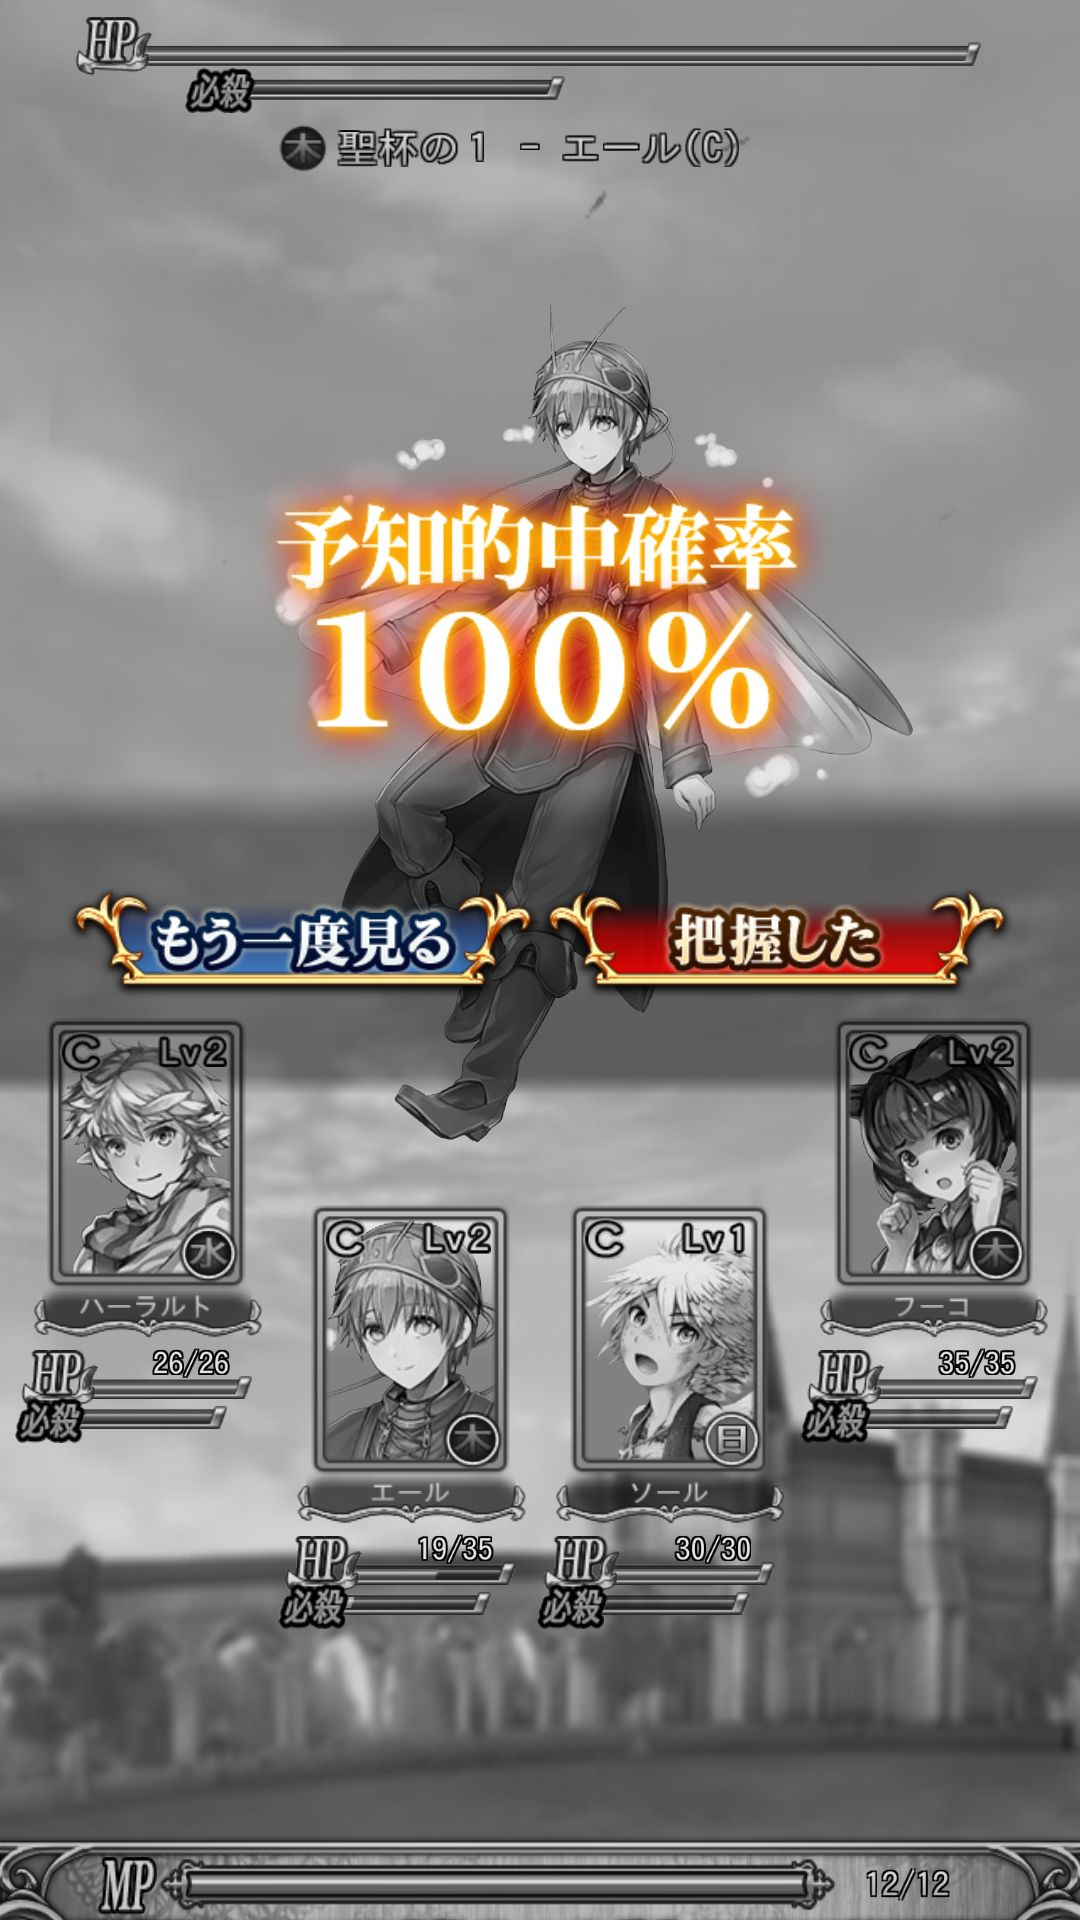 androidアプリ 予言者育成学園 Fortune Tellers Academy攻略スクリーンショット4